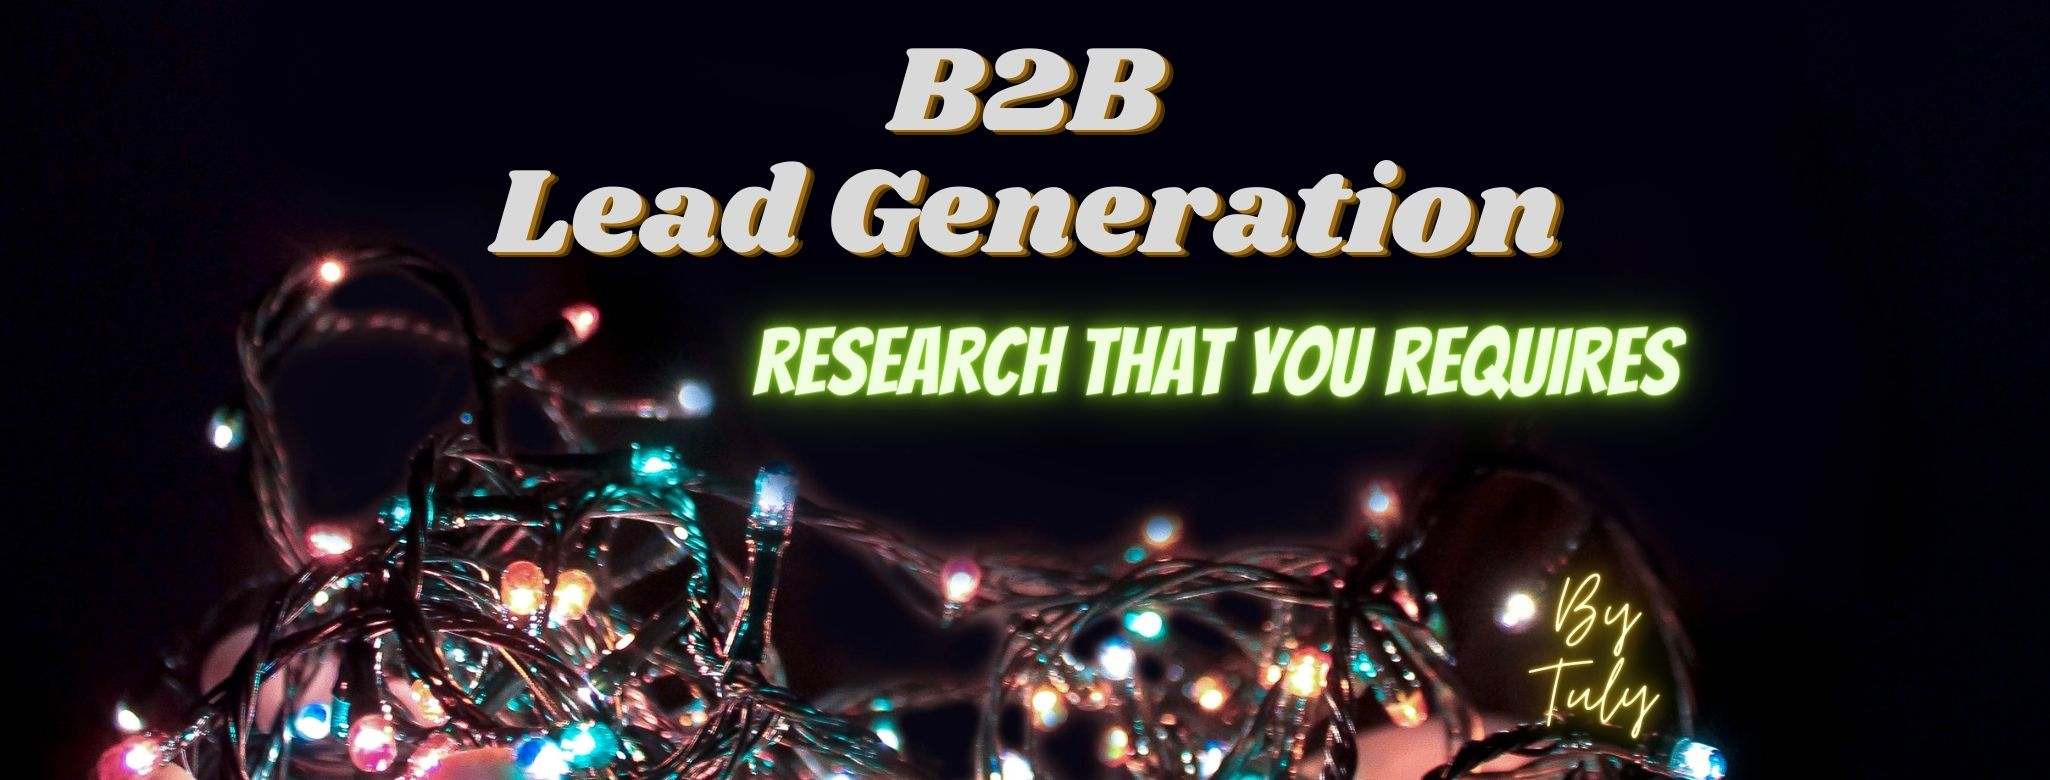 I will do any lead generation and b2b targeted lead generation